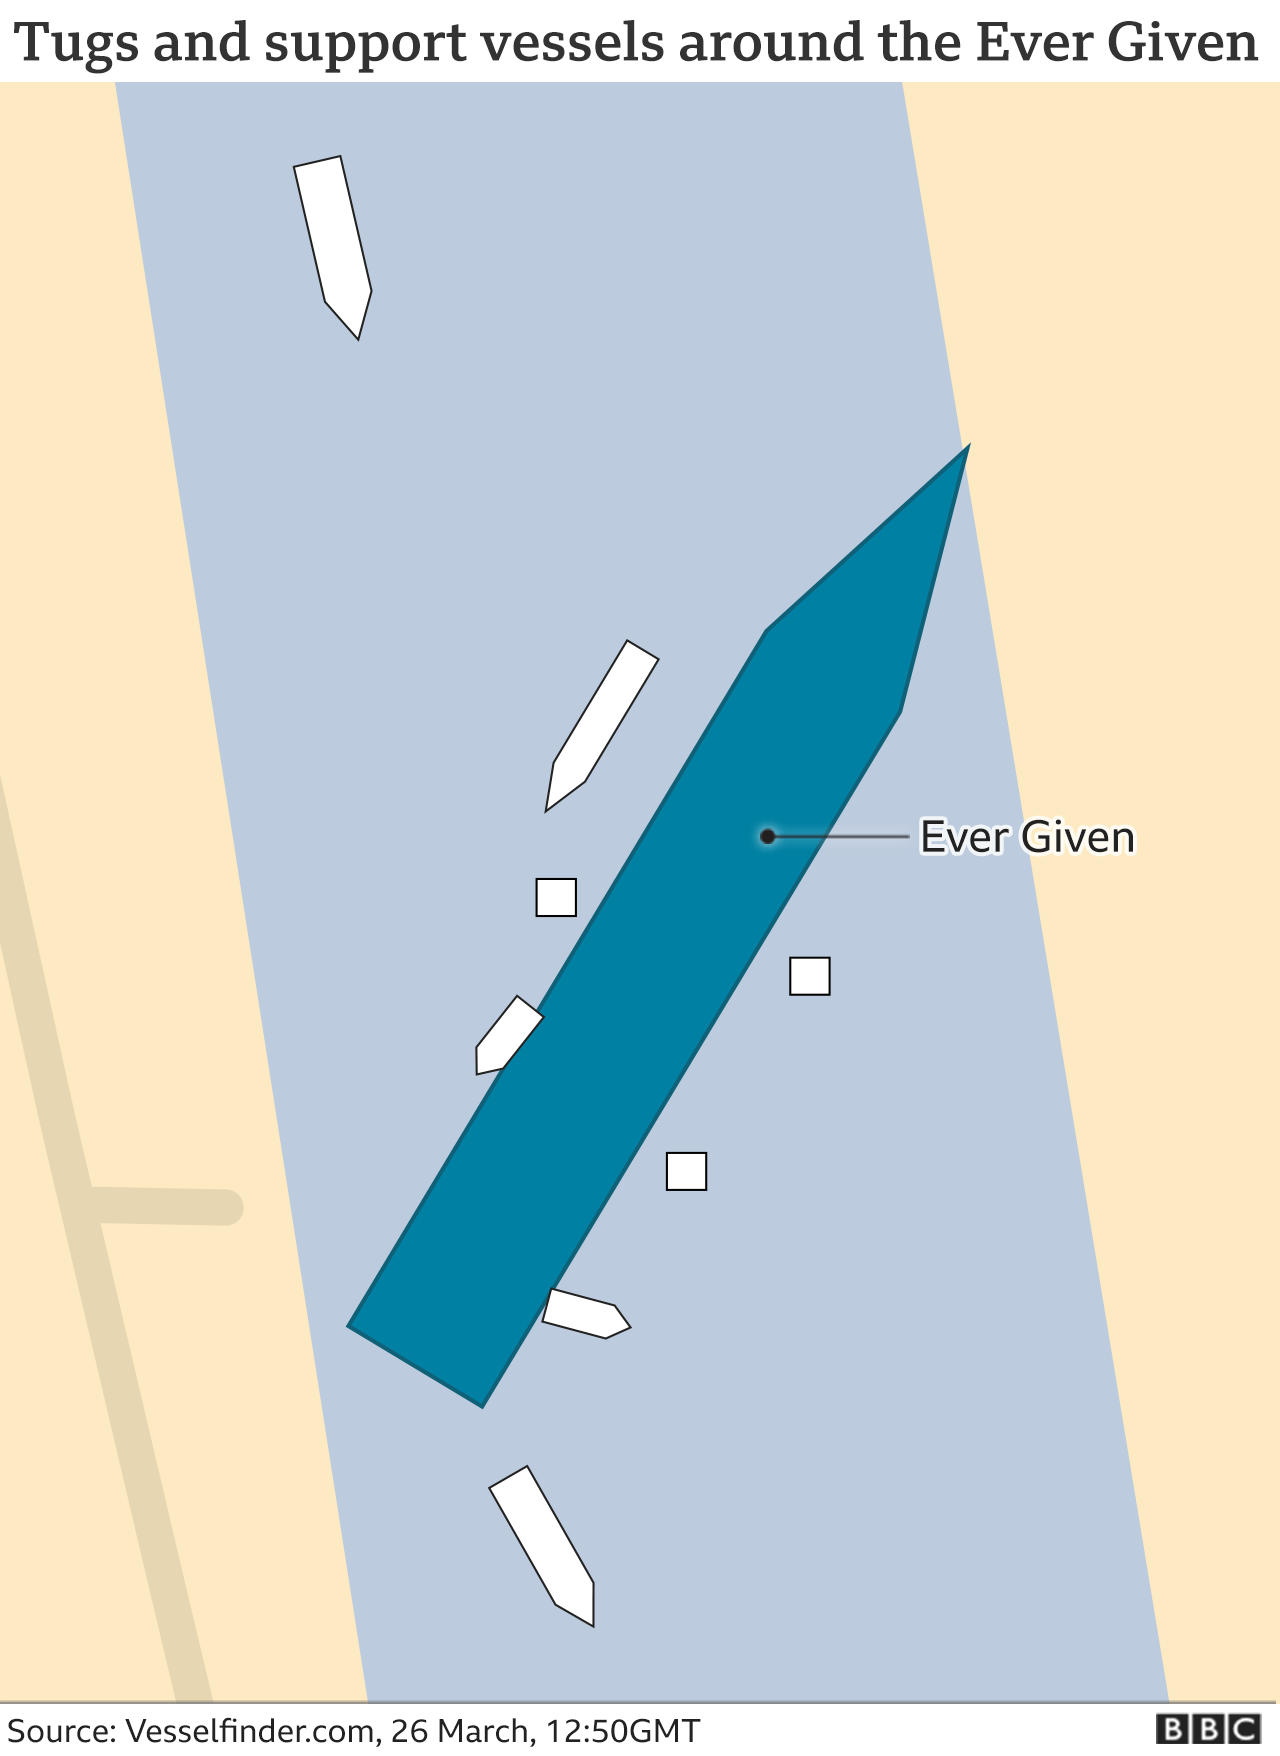 Graphic showing position of tugs and other support vessels around the Ever Given